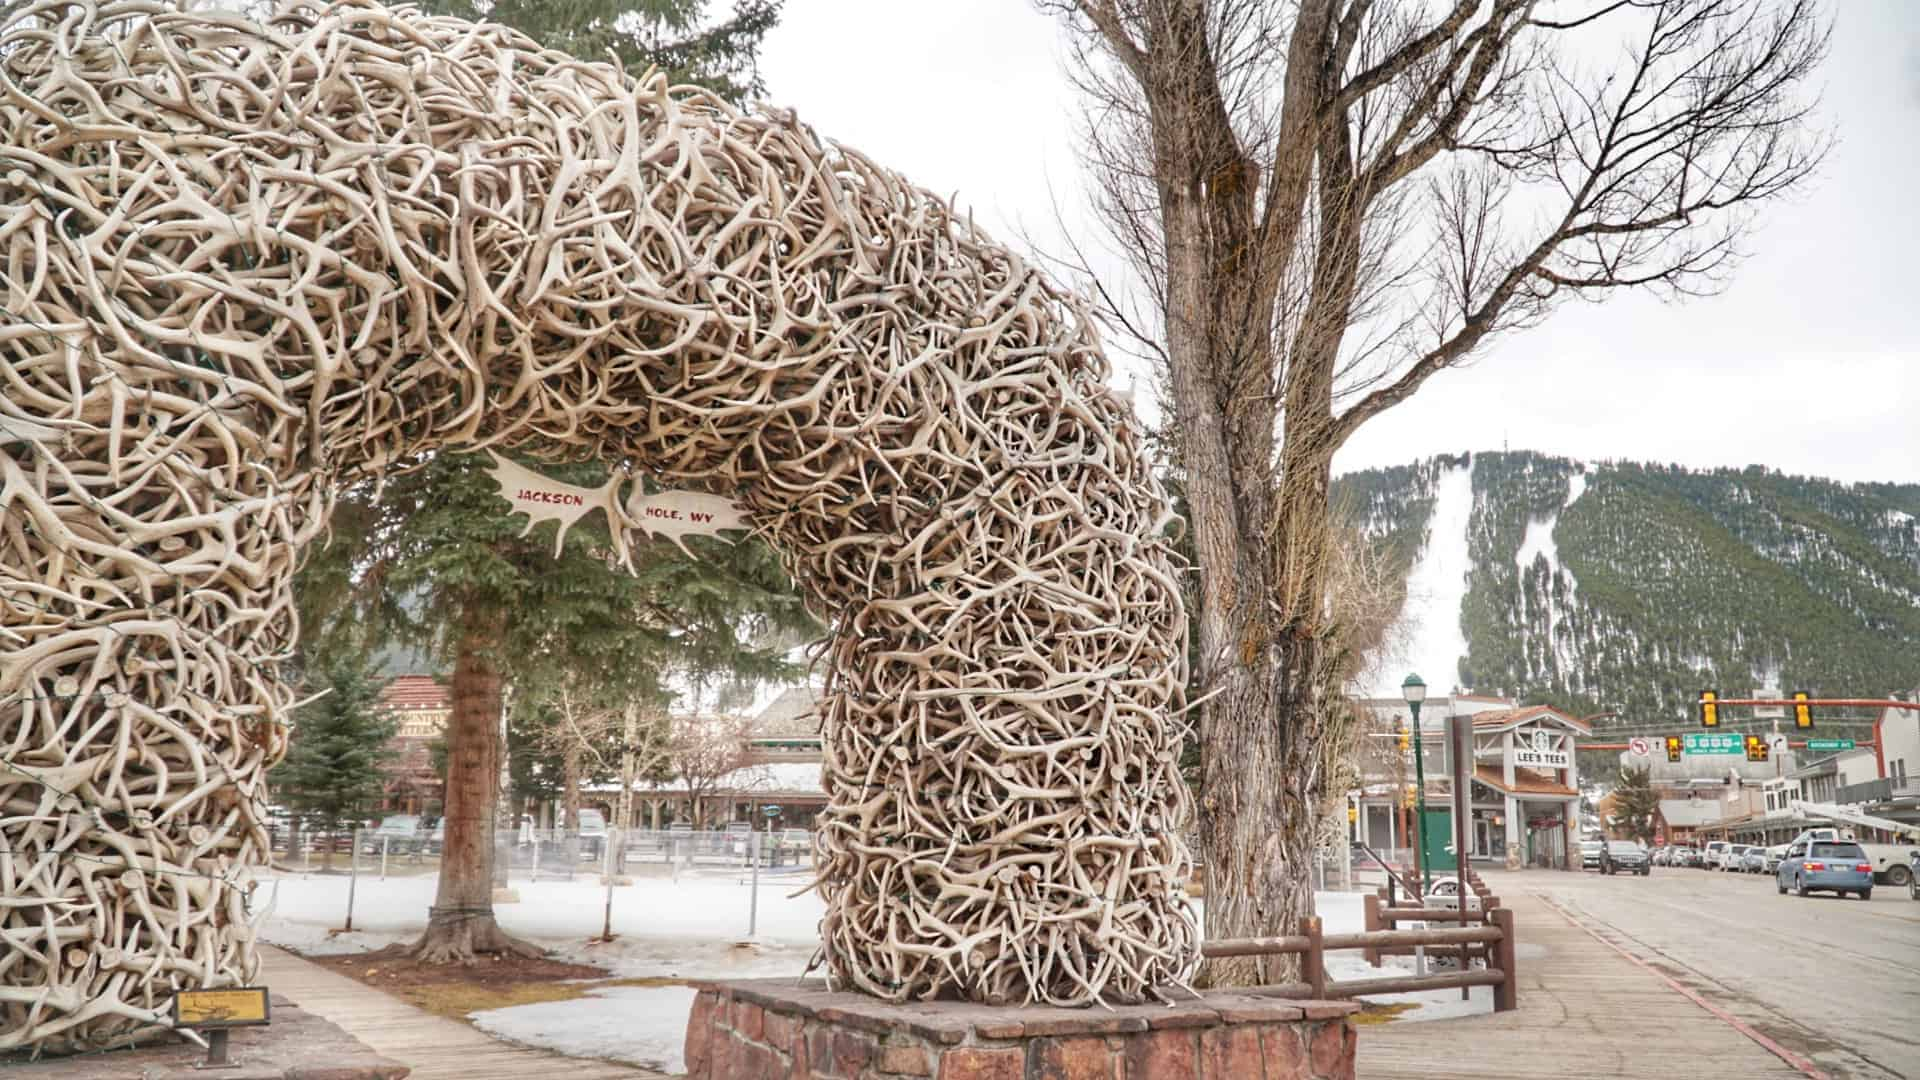 Antler Arches Jackson Hole - 7 Can't Miss Winter Activities in Jackson Hole